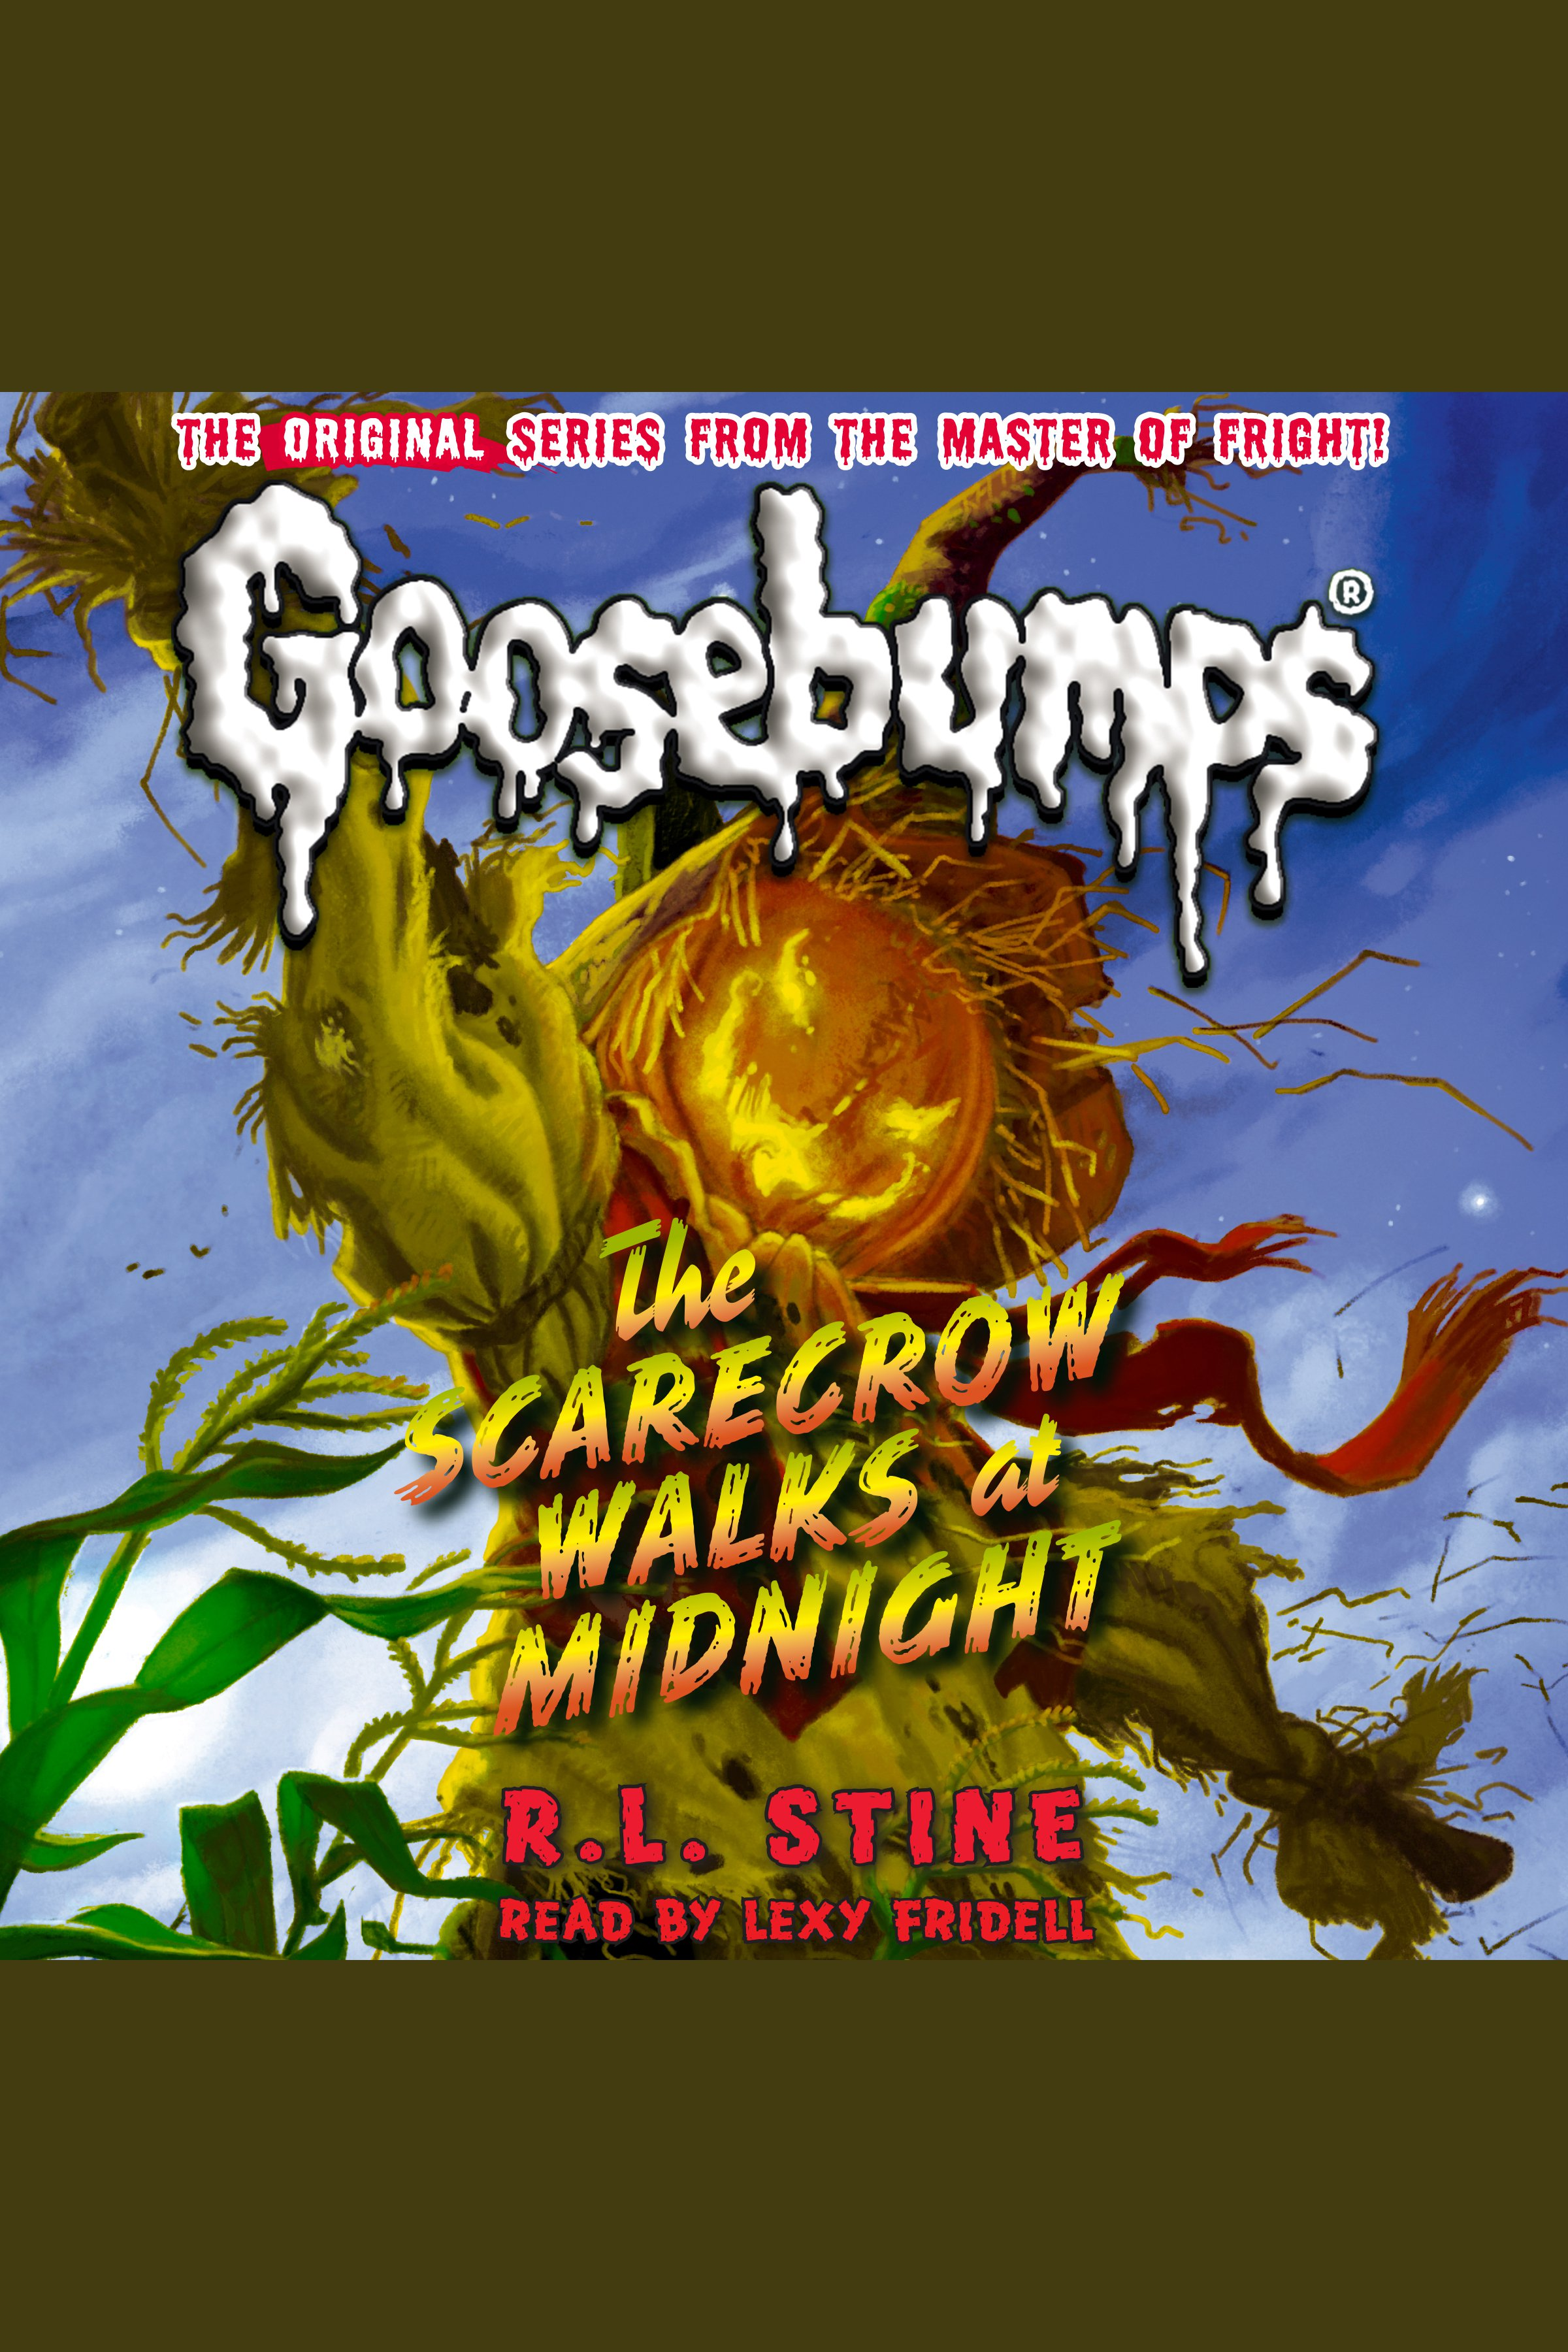 Classic Goosebumps #16 The Scarecrow Walks at Midnight